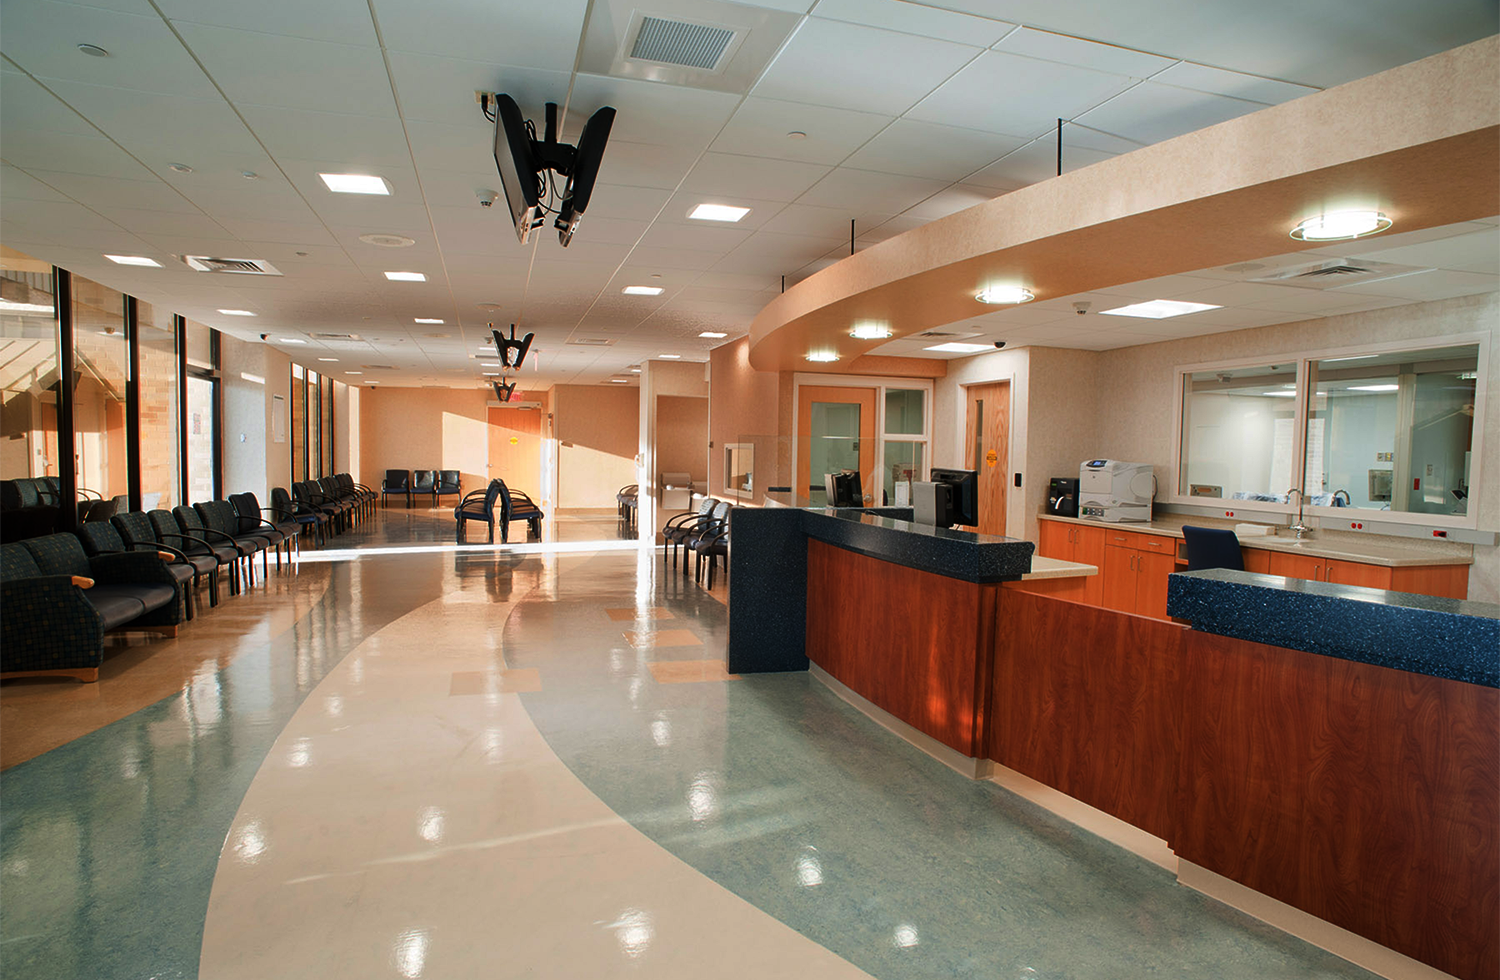 Mercy Medical Center   Census Explodes, Yet Nurses Still Get to Do More of What They Love